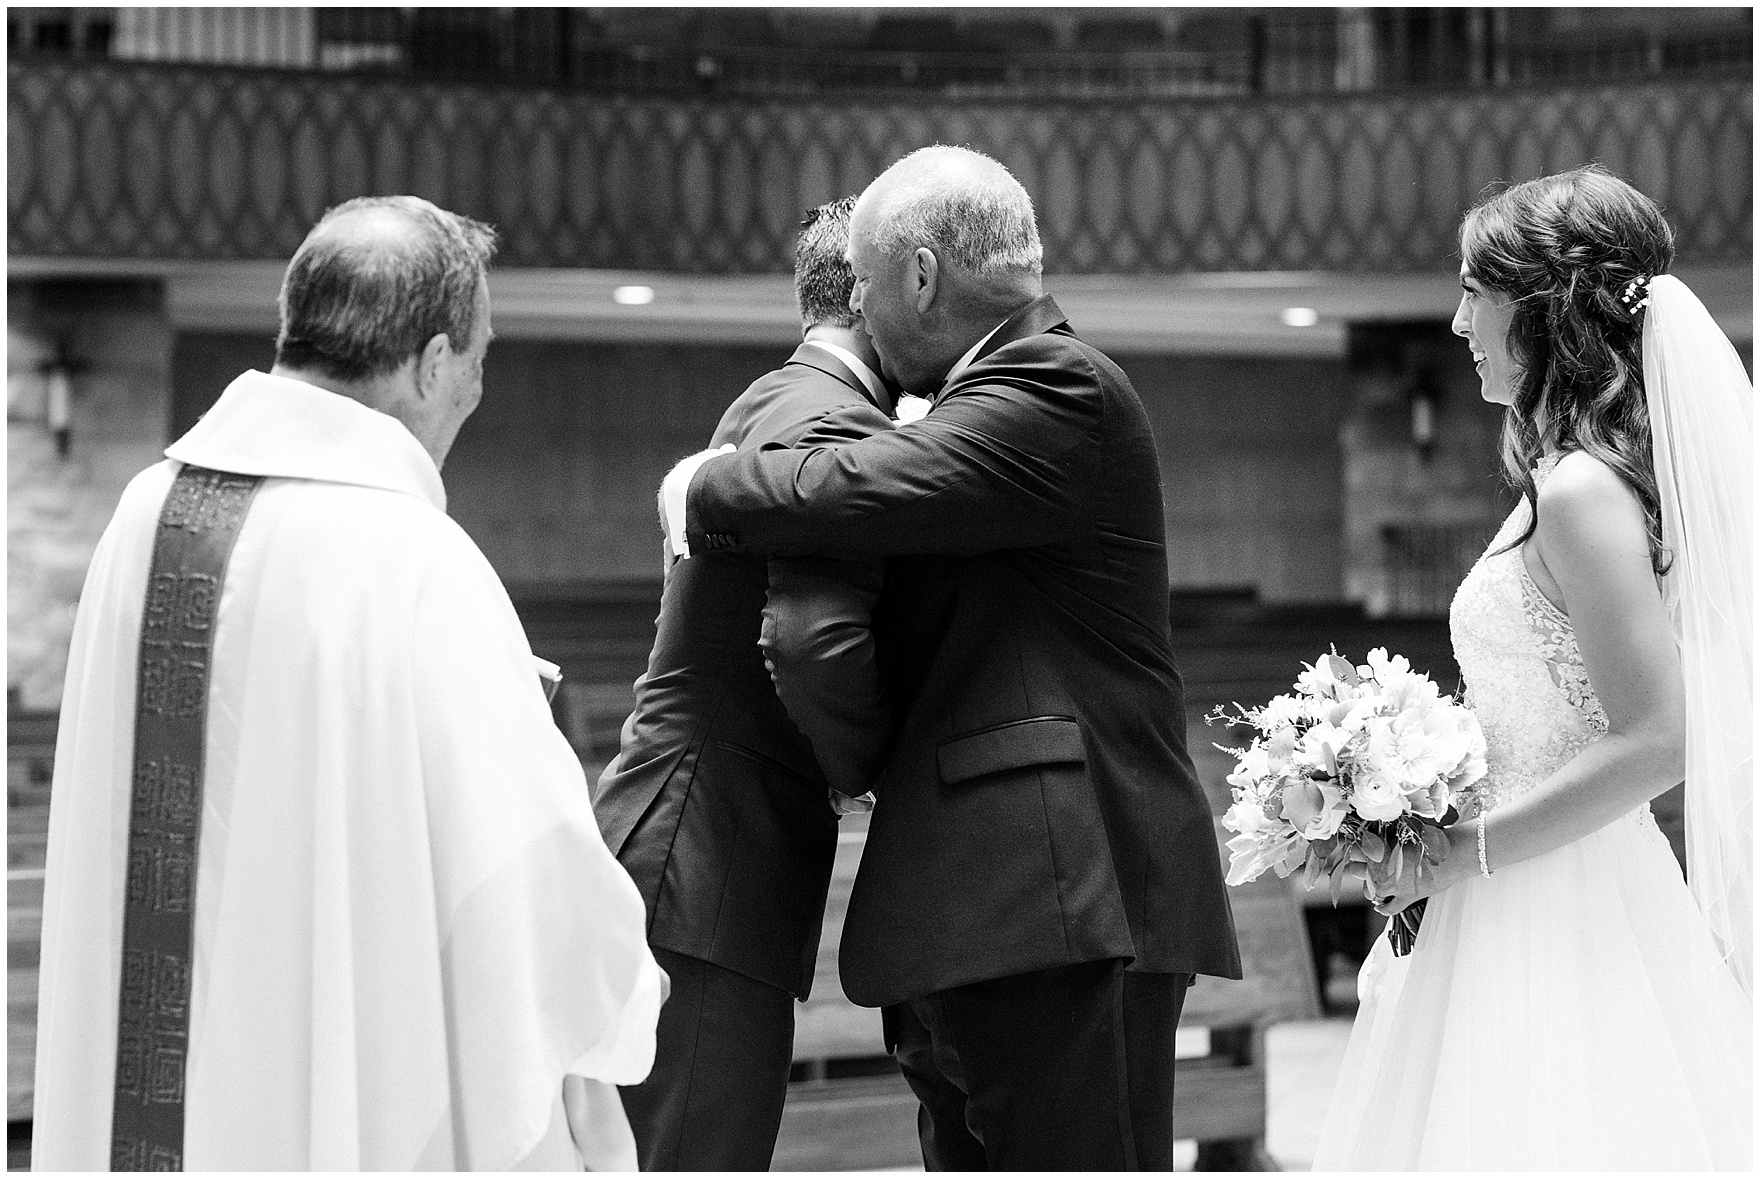 The bride's father hugs the groom during the ceremony at St. Anne's Catholic Community, for a Biltmore Country Club Barrington wedding.